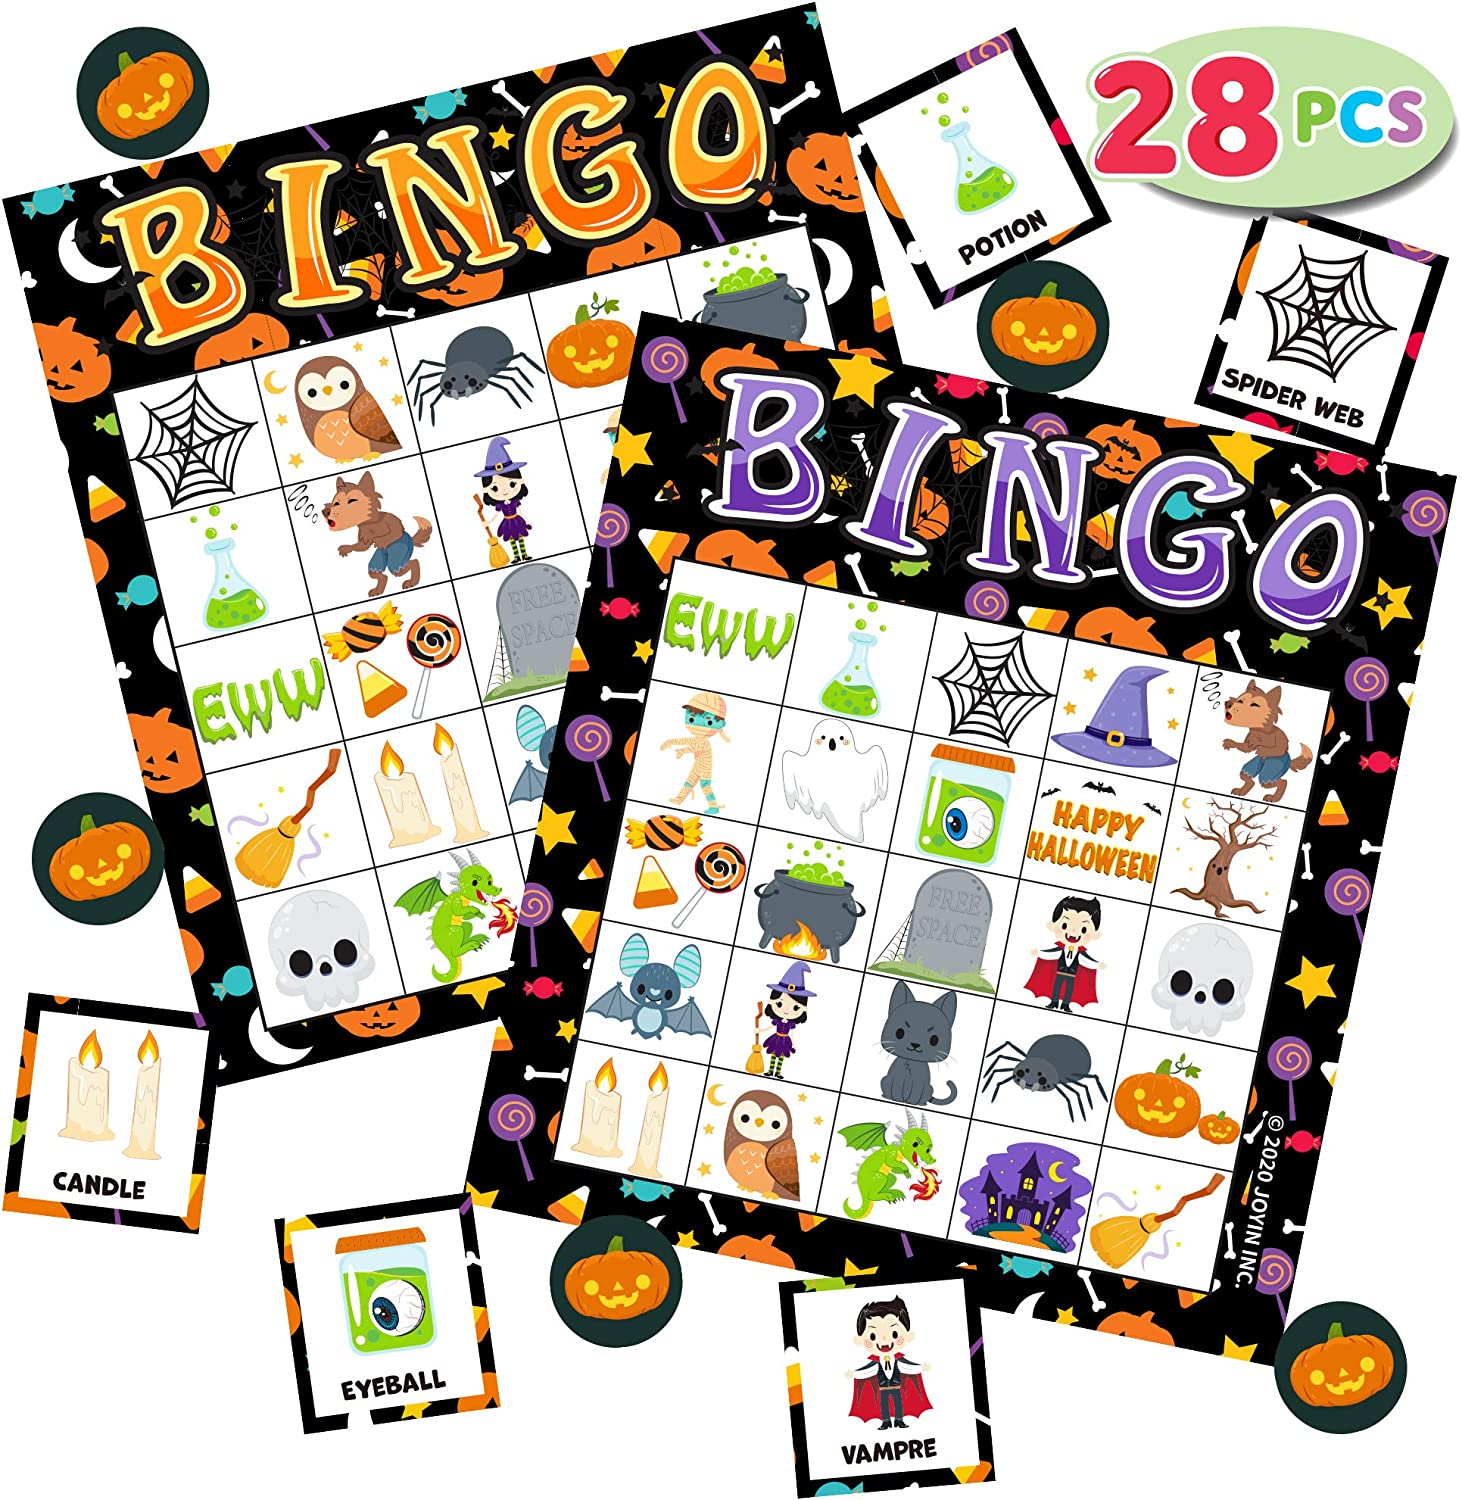 Family Activity Trick or Treating for Kids Halloween Party Card Games Halloween Party Favors Supplies School Classroom Games 28 Halloween Bingo Game Cards 5X5